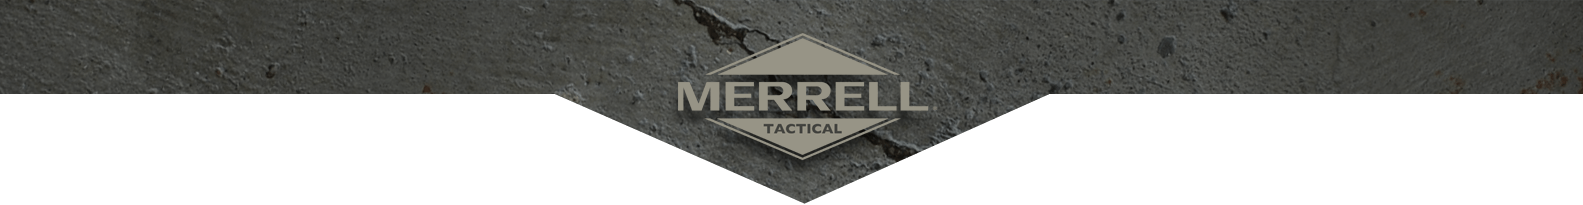 Merrell Tactical Australia Police Boots Military Boots